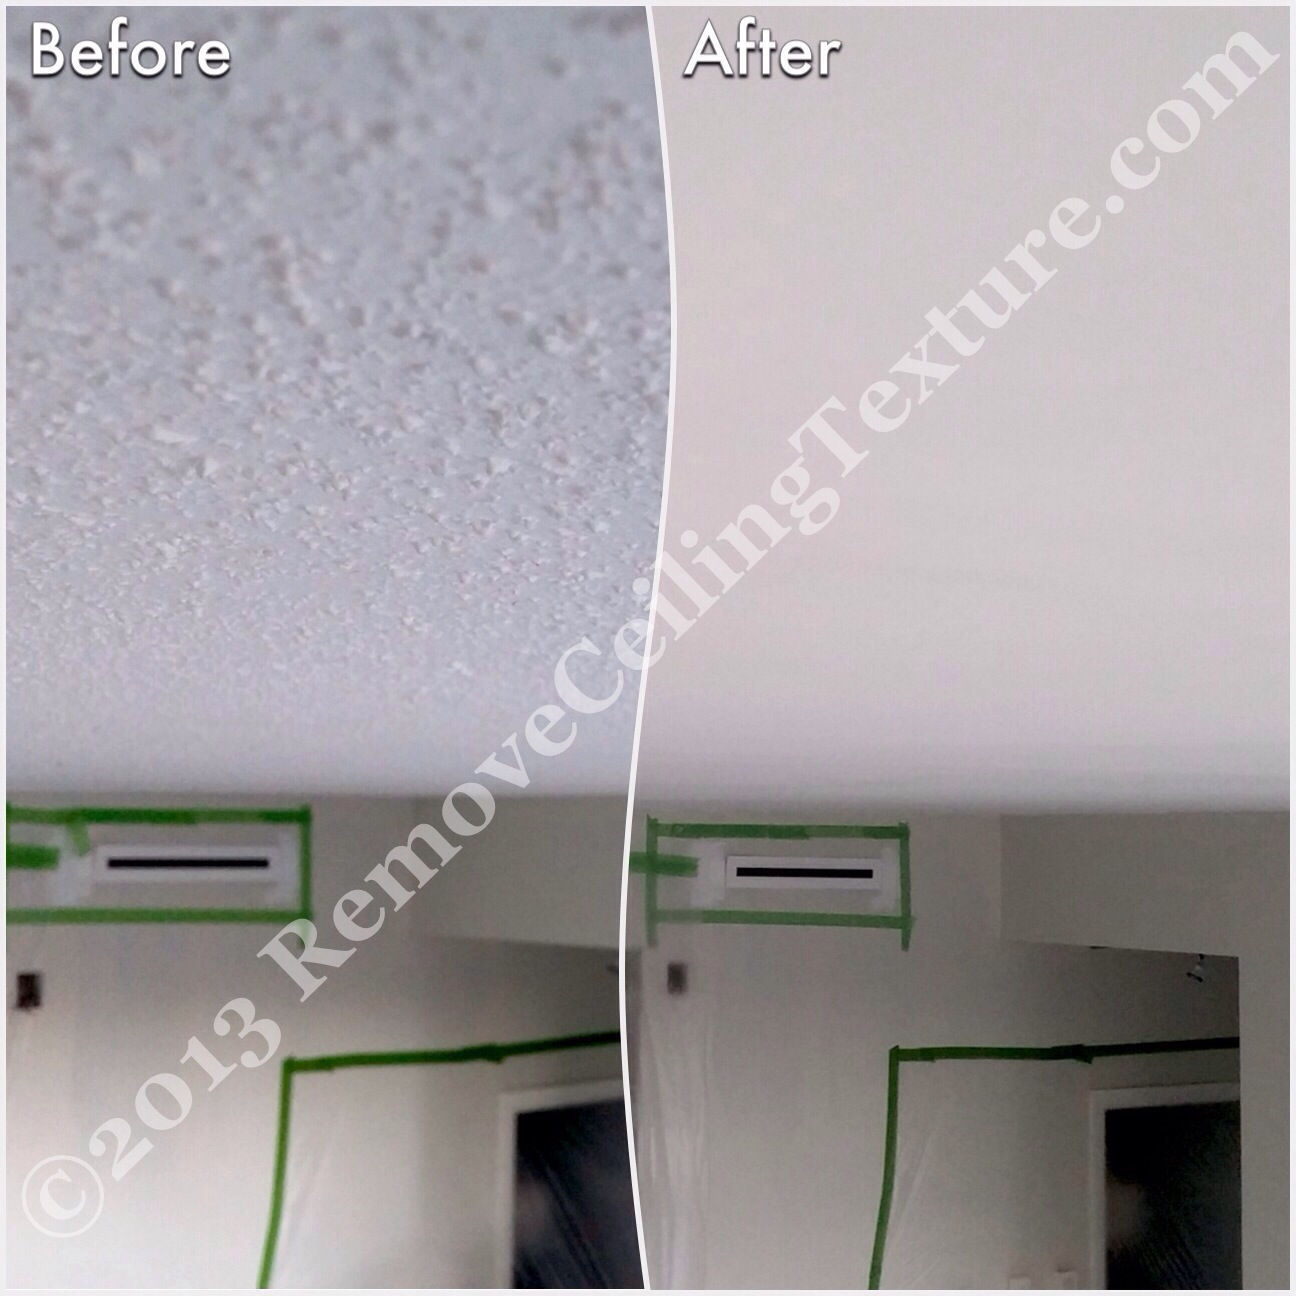 Cost removing popcorn ceilings 28 images roofing popcorn ceiling asbestos is it still good - Key steps removal asbestos roofs ...